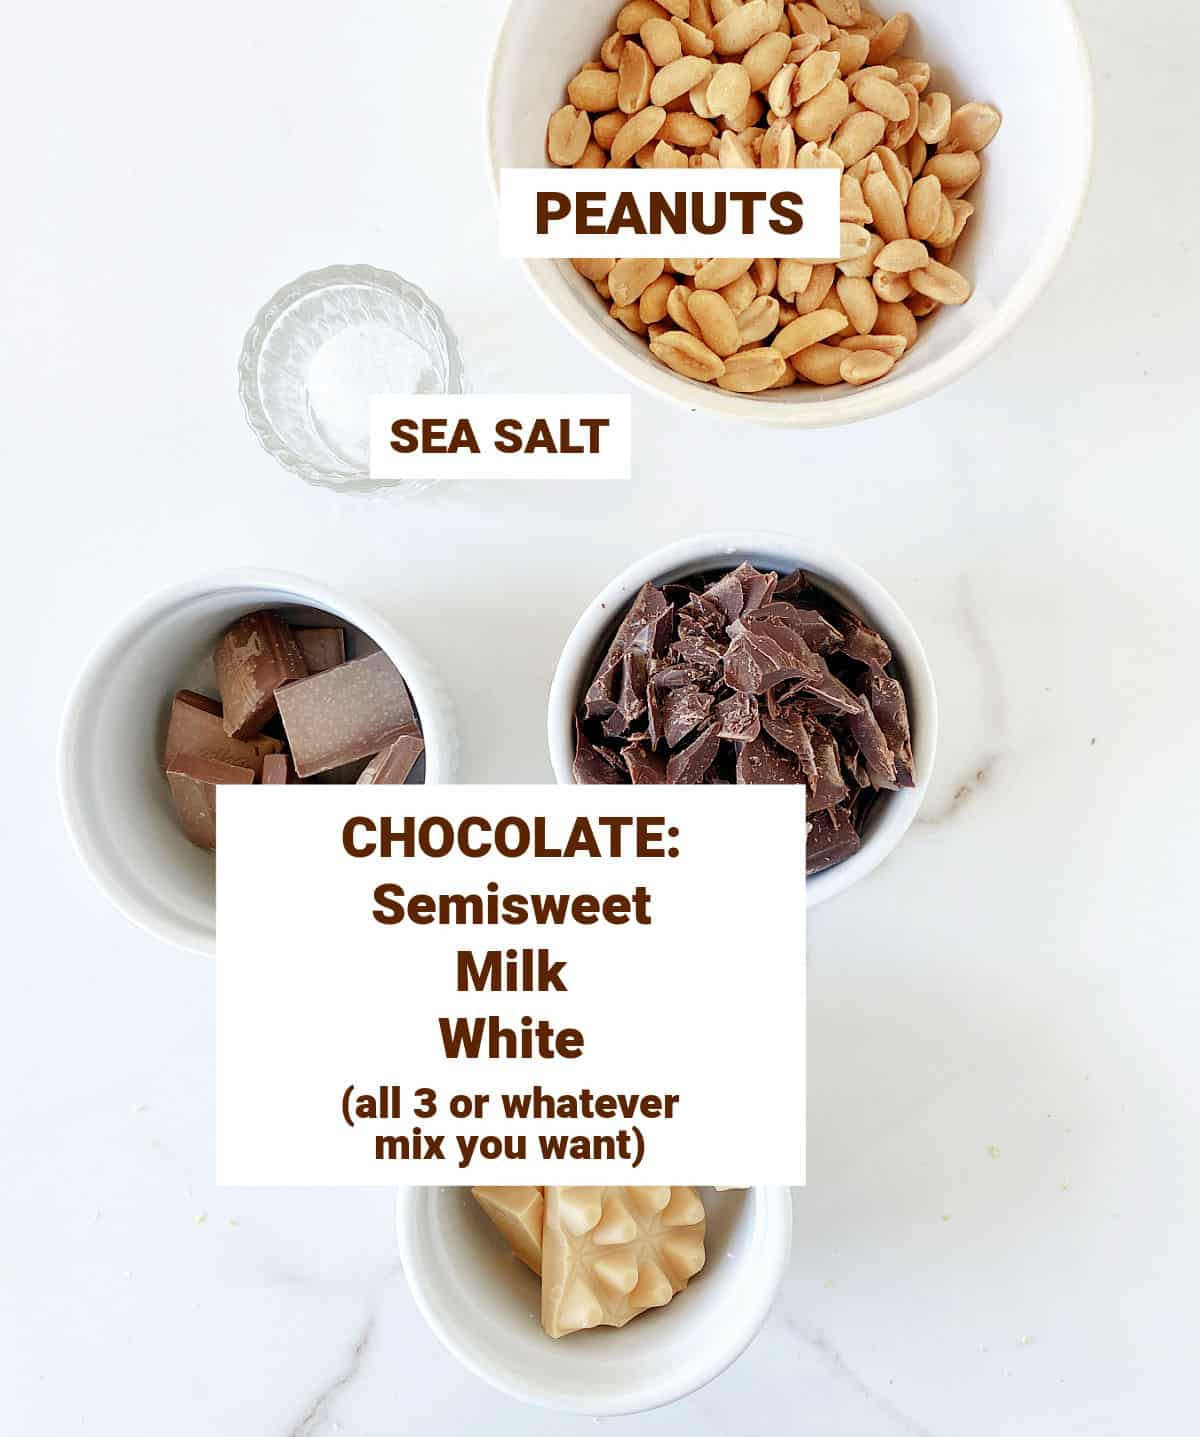 White surface with bowls containing different chocolates, peanuts and salt